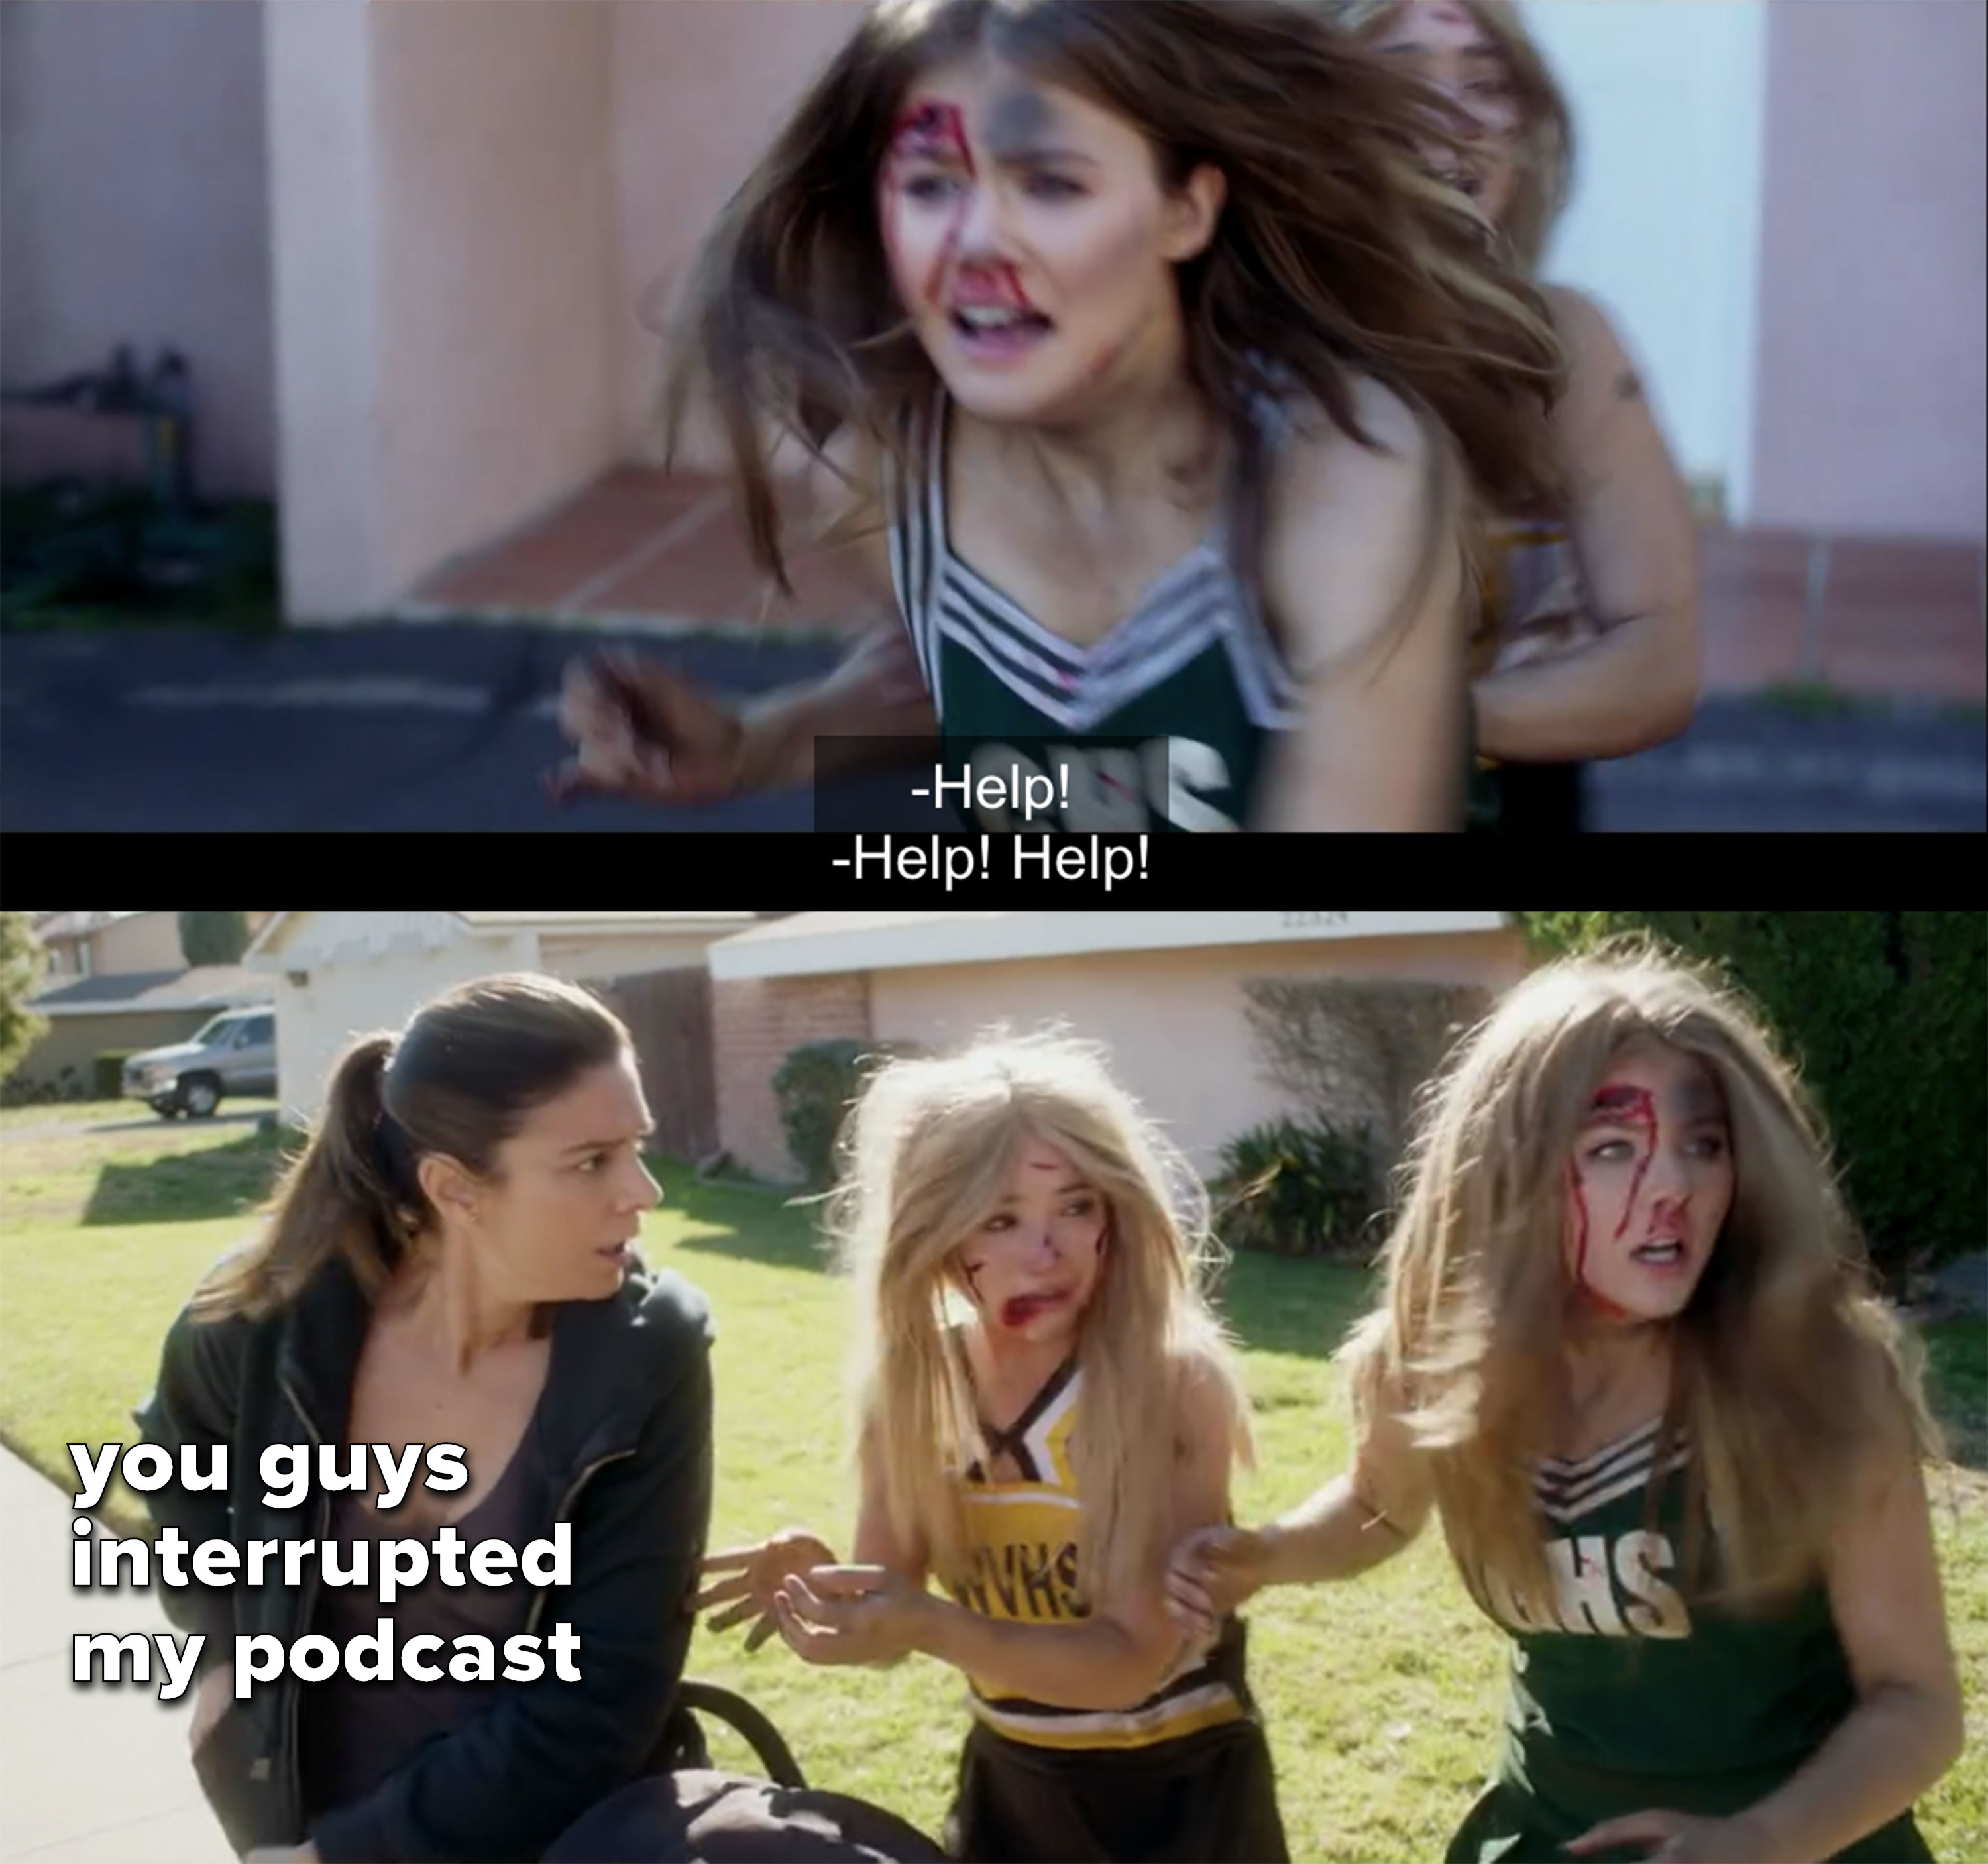 """the girls run outside and get a startled stranger's attention, captioned """"you guys interrupted my podcast"""""""